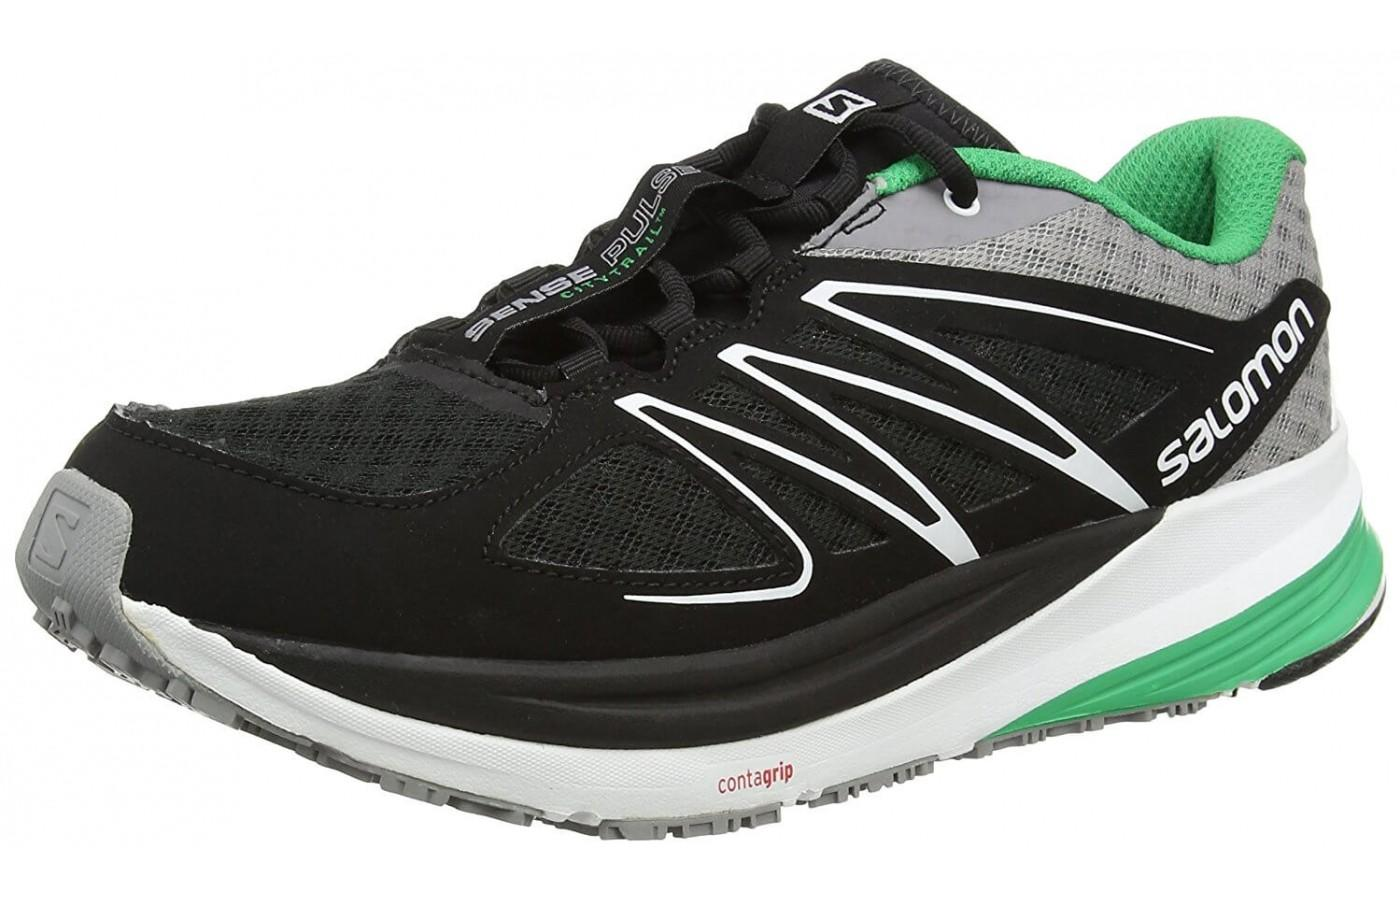 Salomon Sense Pulse black color option